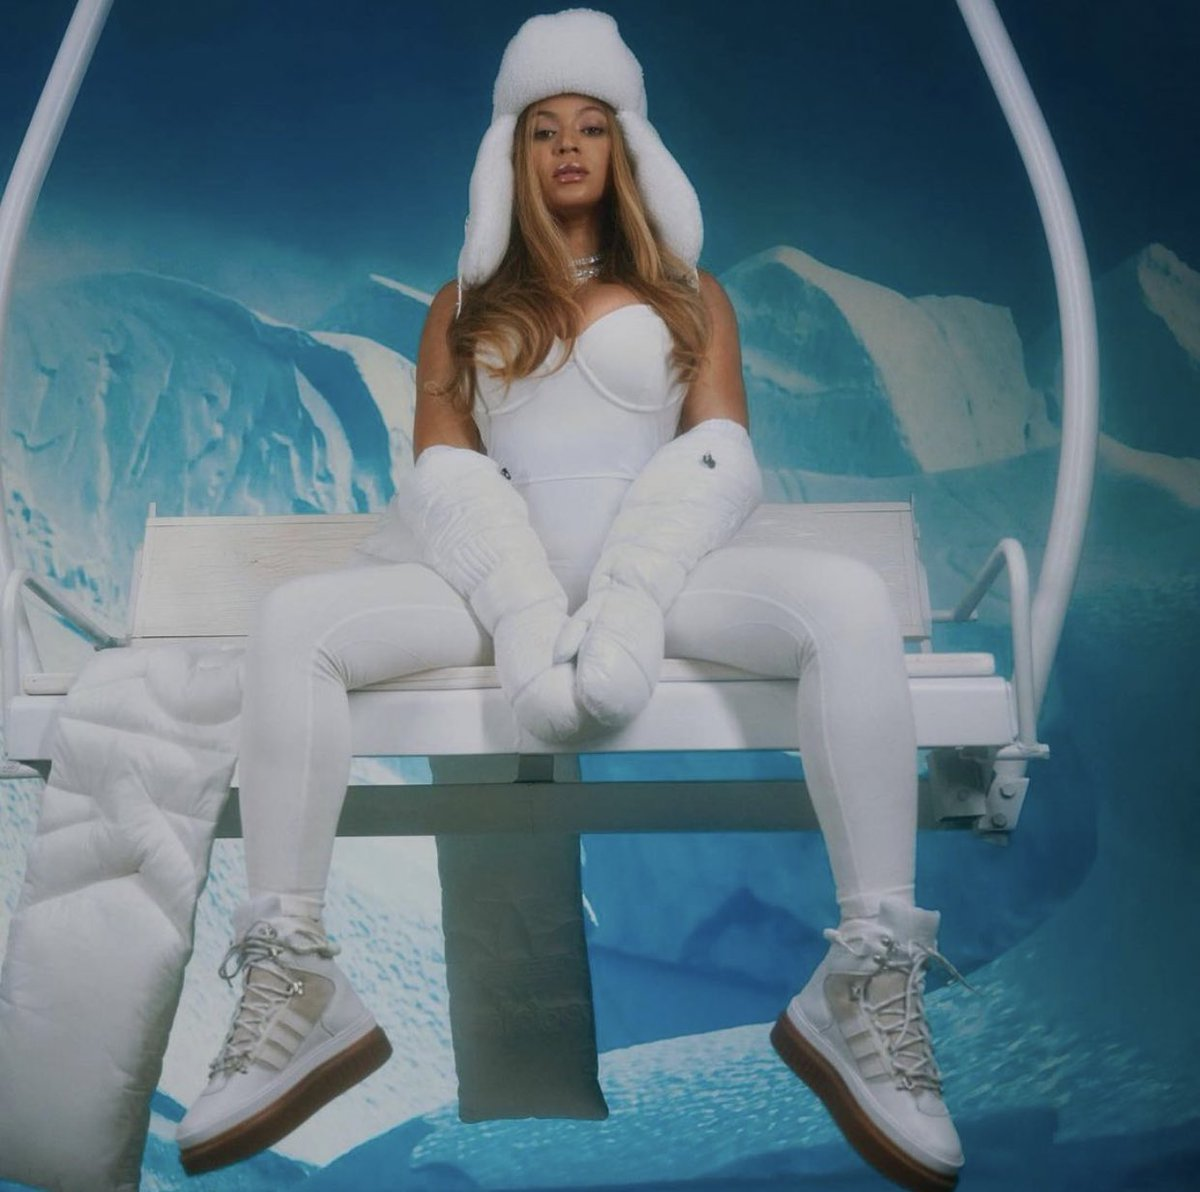 all hail the Ice Queen 😭❄️👑🤍 #ICYPARK